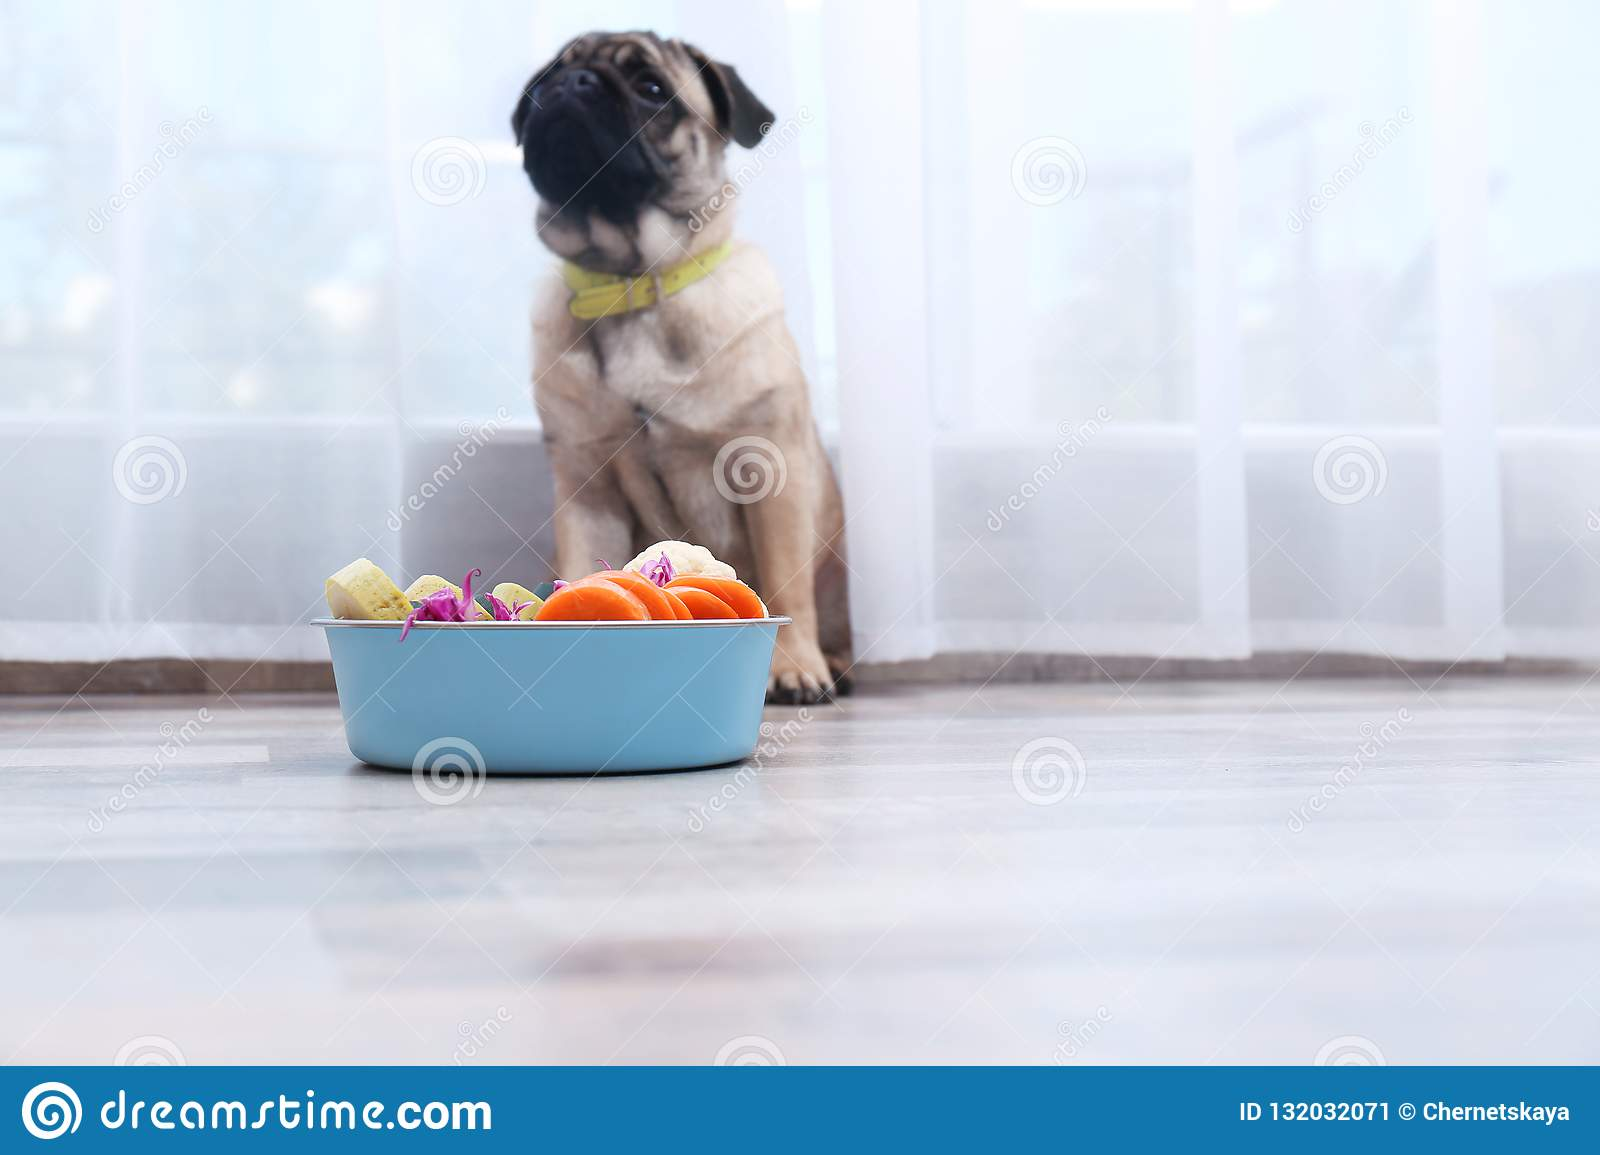 Cute Little Pug And Bowl With Organic Food At Home